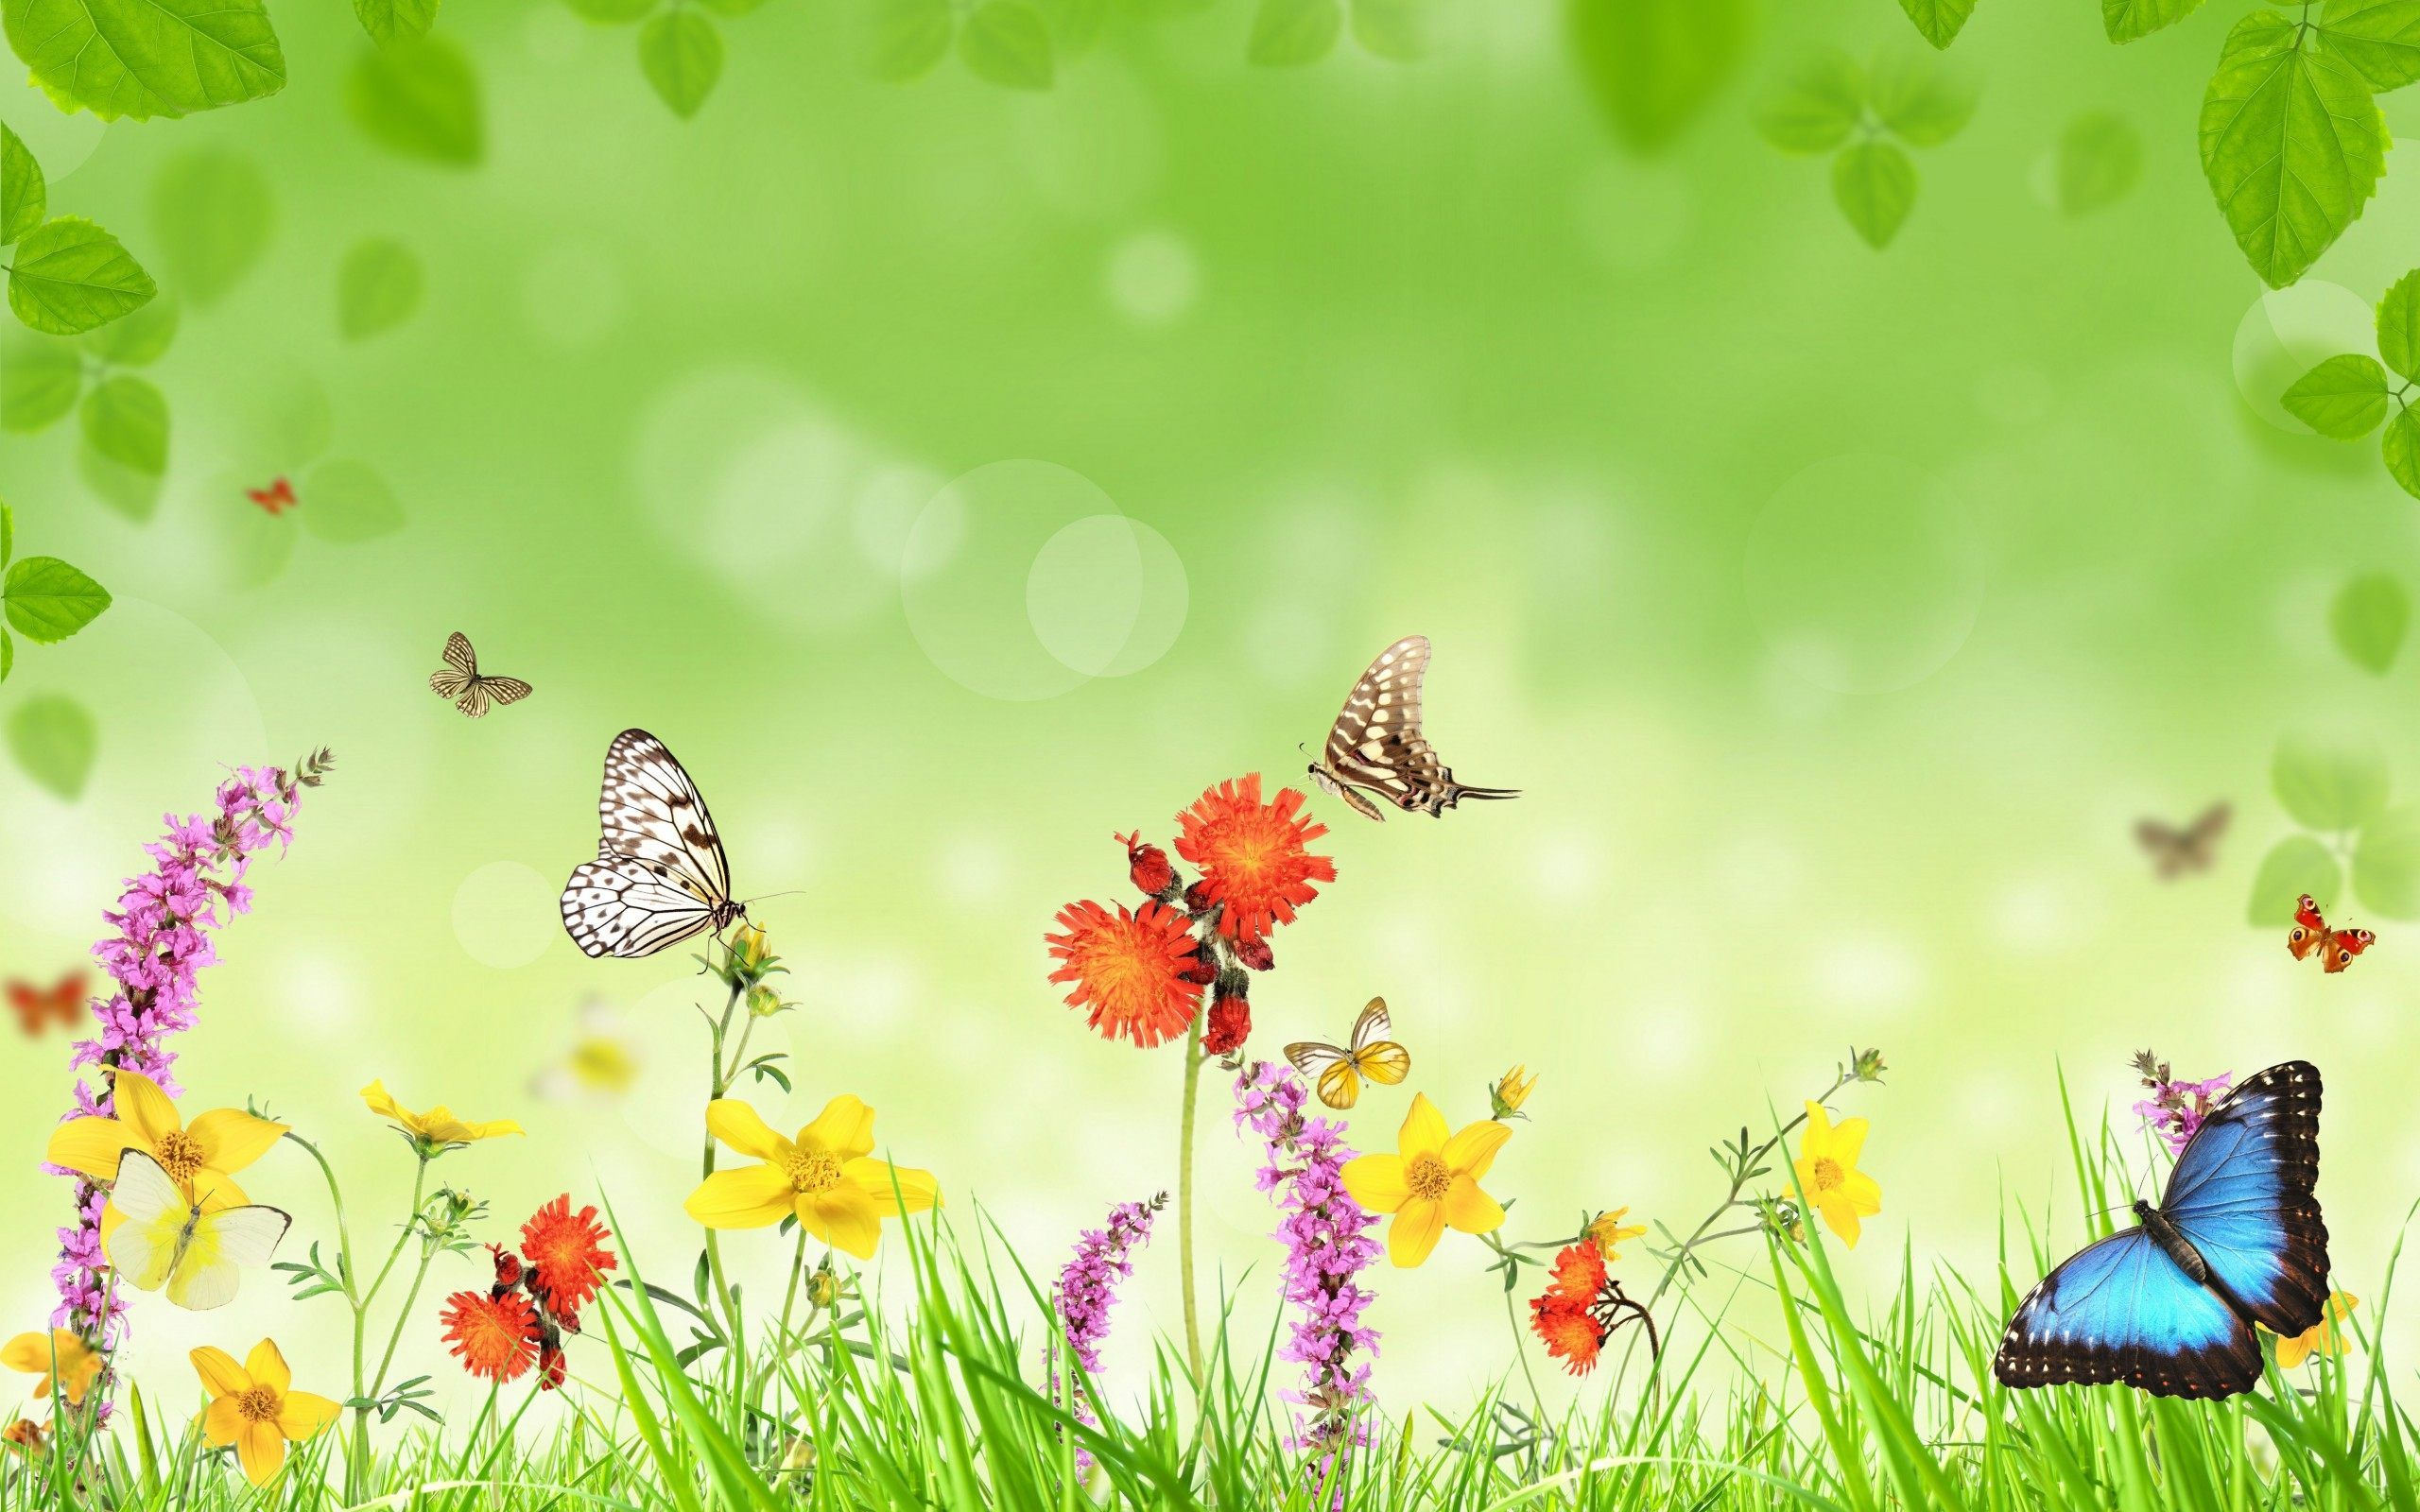 Butterfly Wallpaper Butterfly background, Art wallpaper